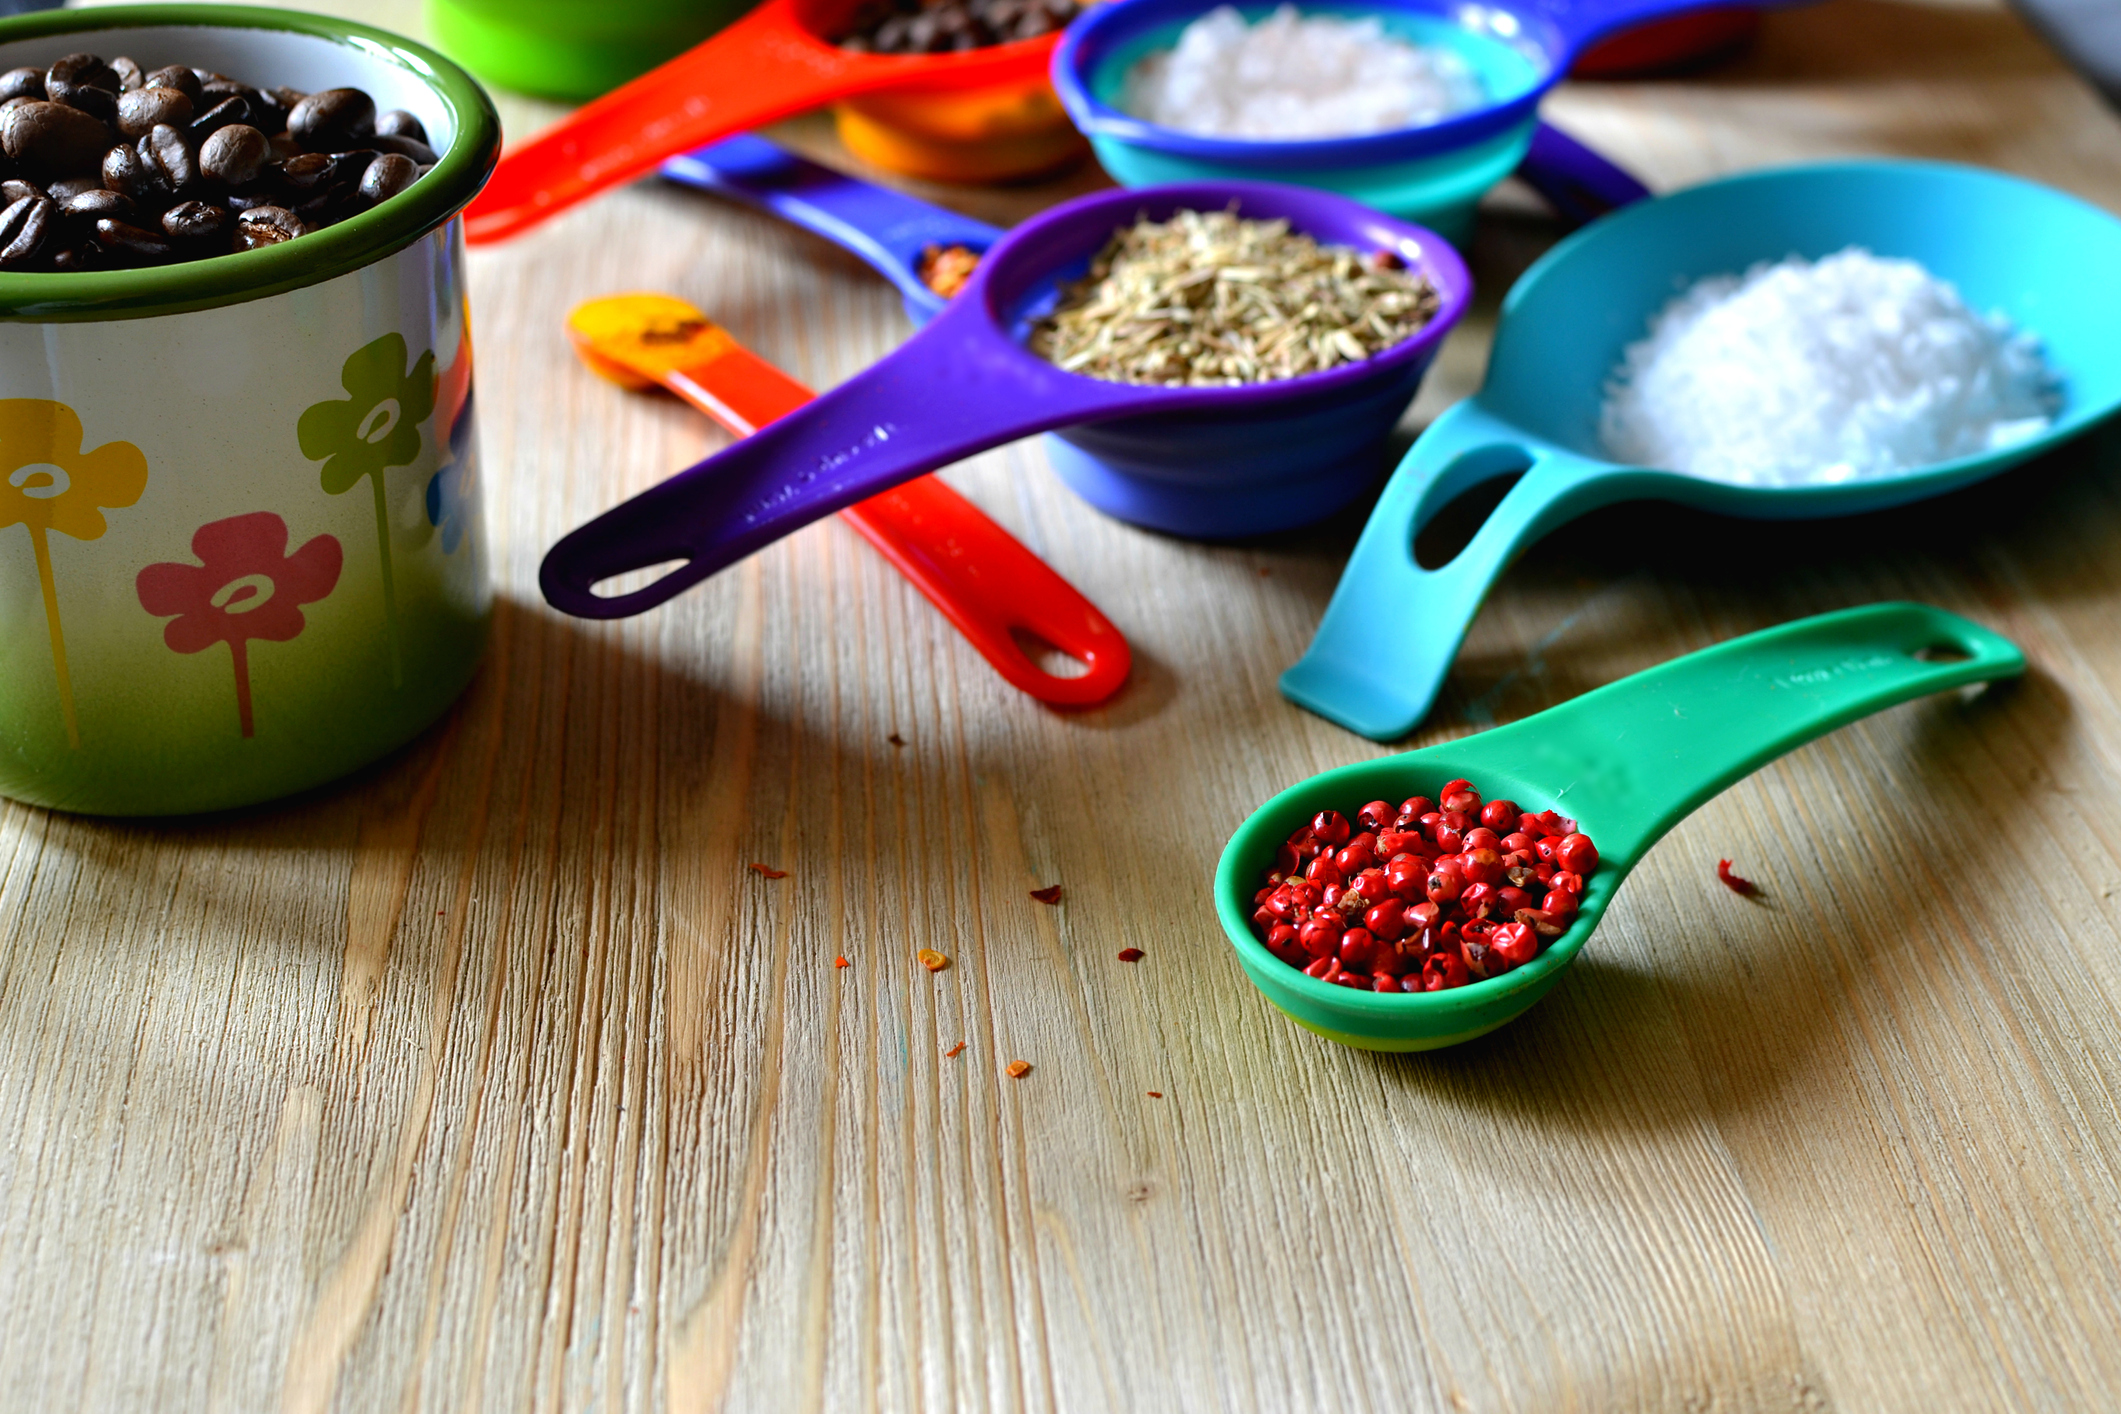 Kitchen measuring set filled with colorful ingredients.